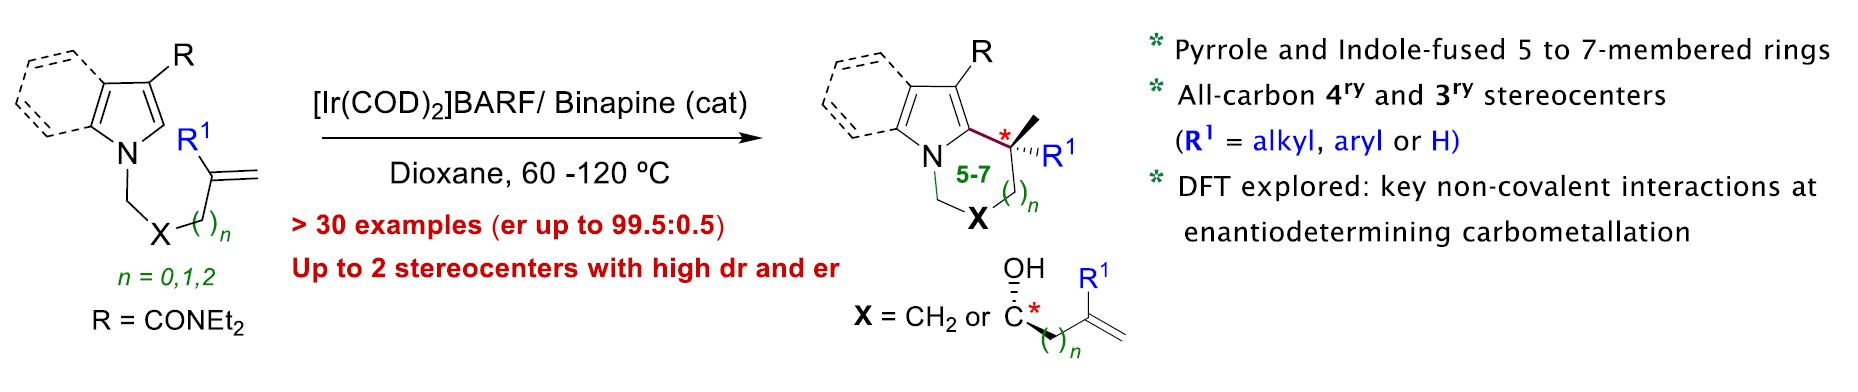 Highly Enantioselective Iridium(I)-Catalyzed Hydrocarbonation of Alkenes: A Versatile Approach to Heterocyclic Systems Bearing Quaternary Stereocenters